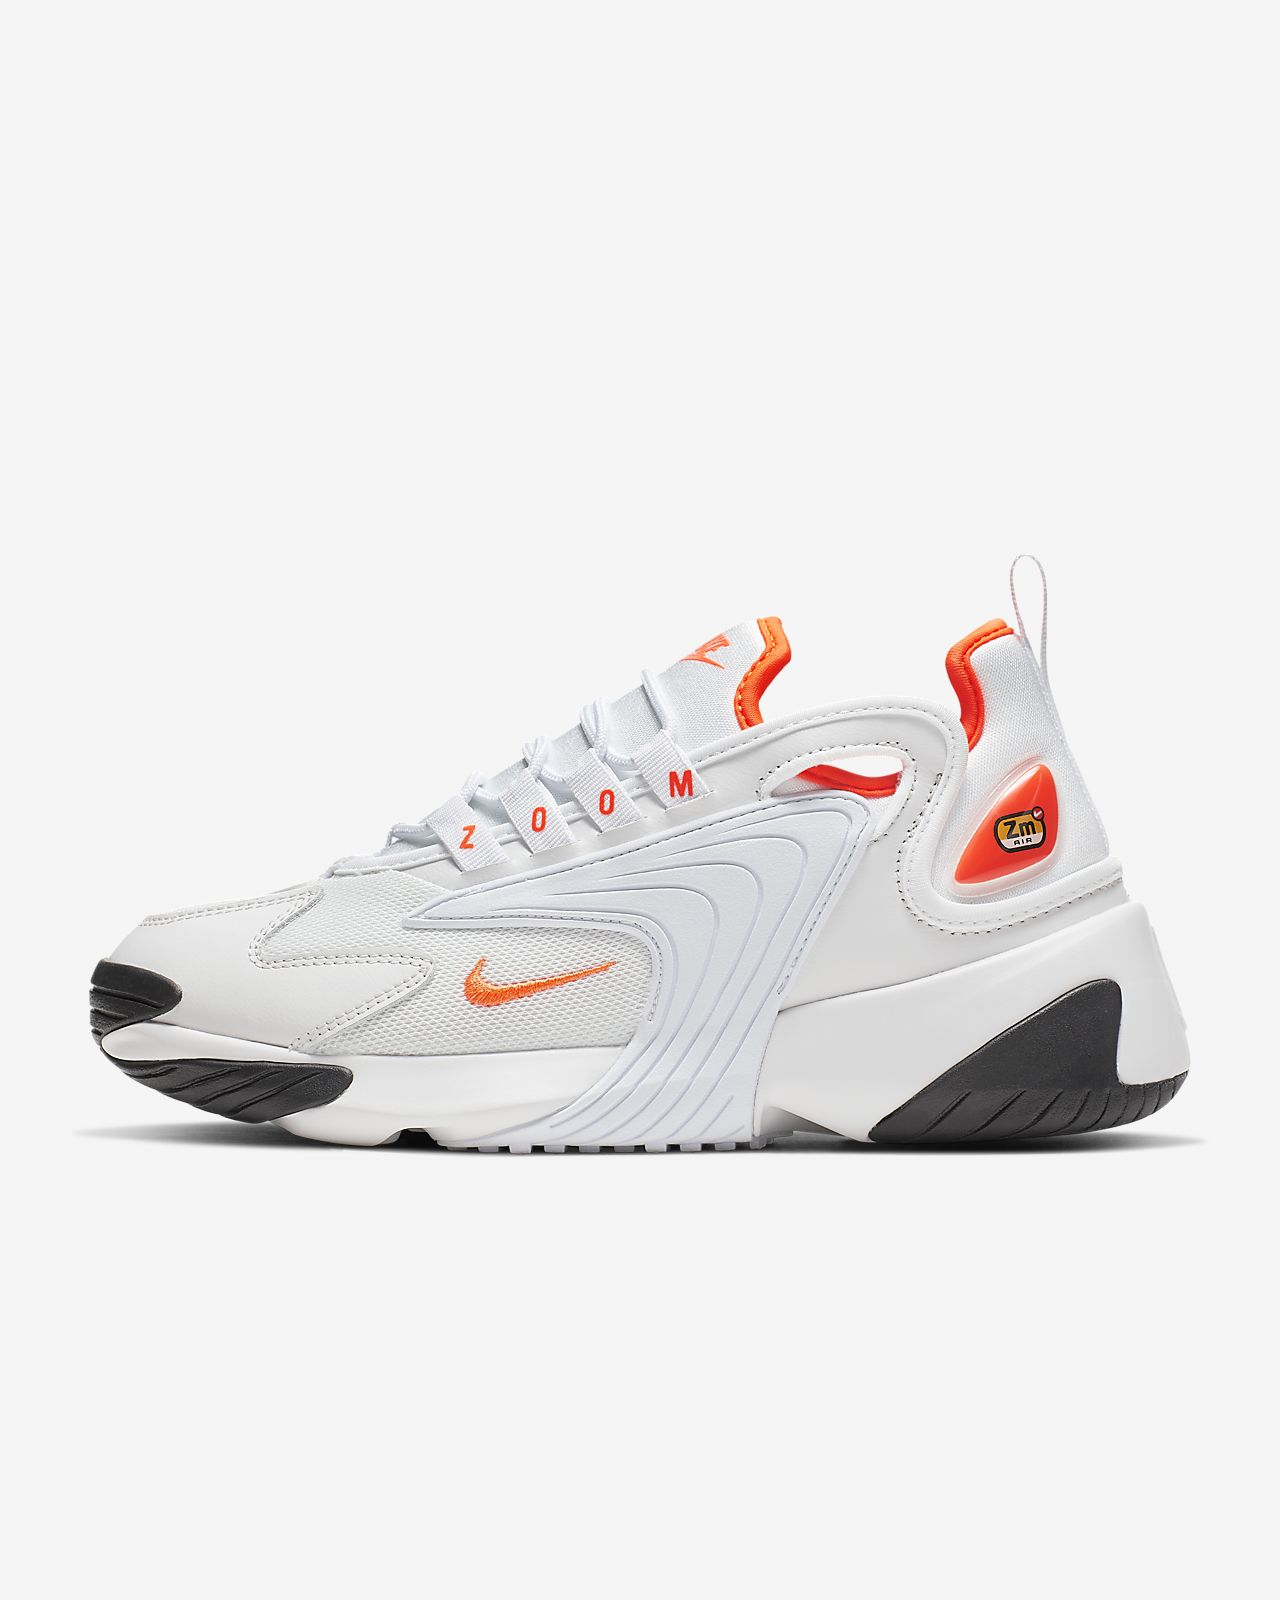 sneakers for cheap 22a61 6c133 ... Sko Nike Zoom 2K för kvinnor